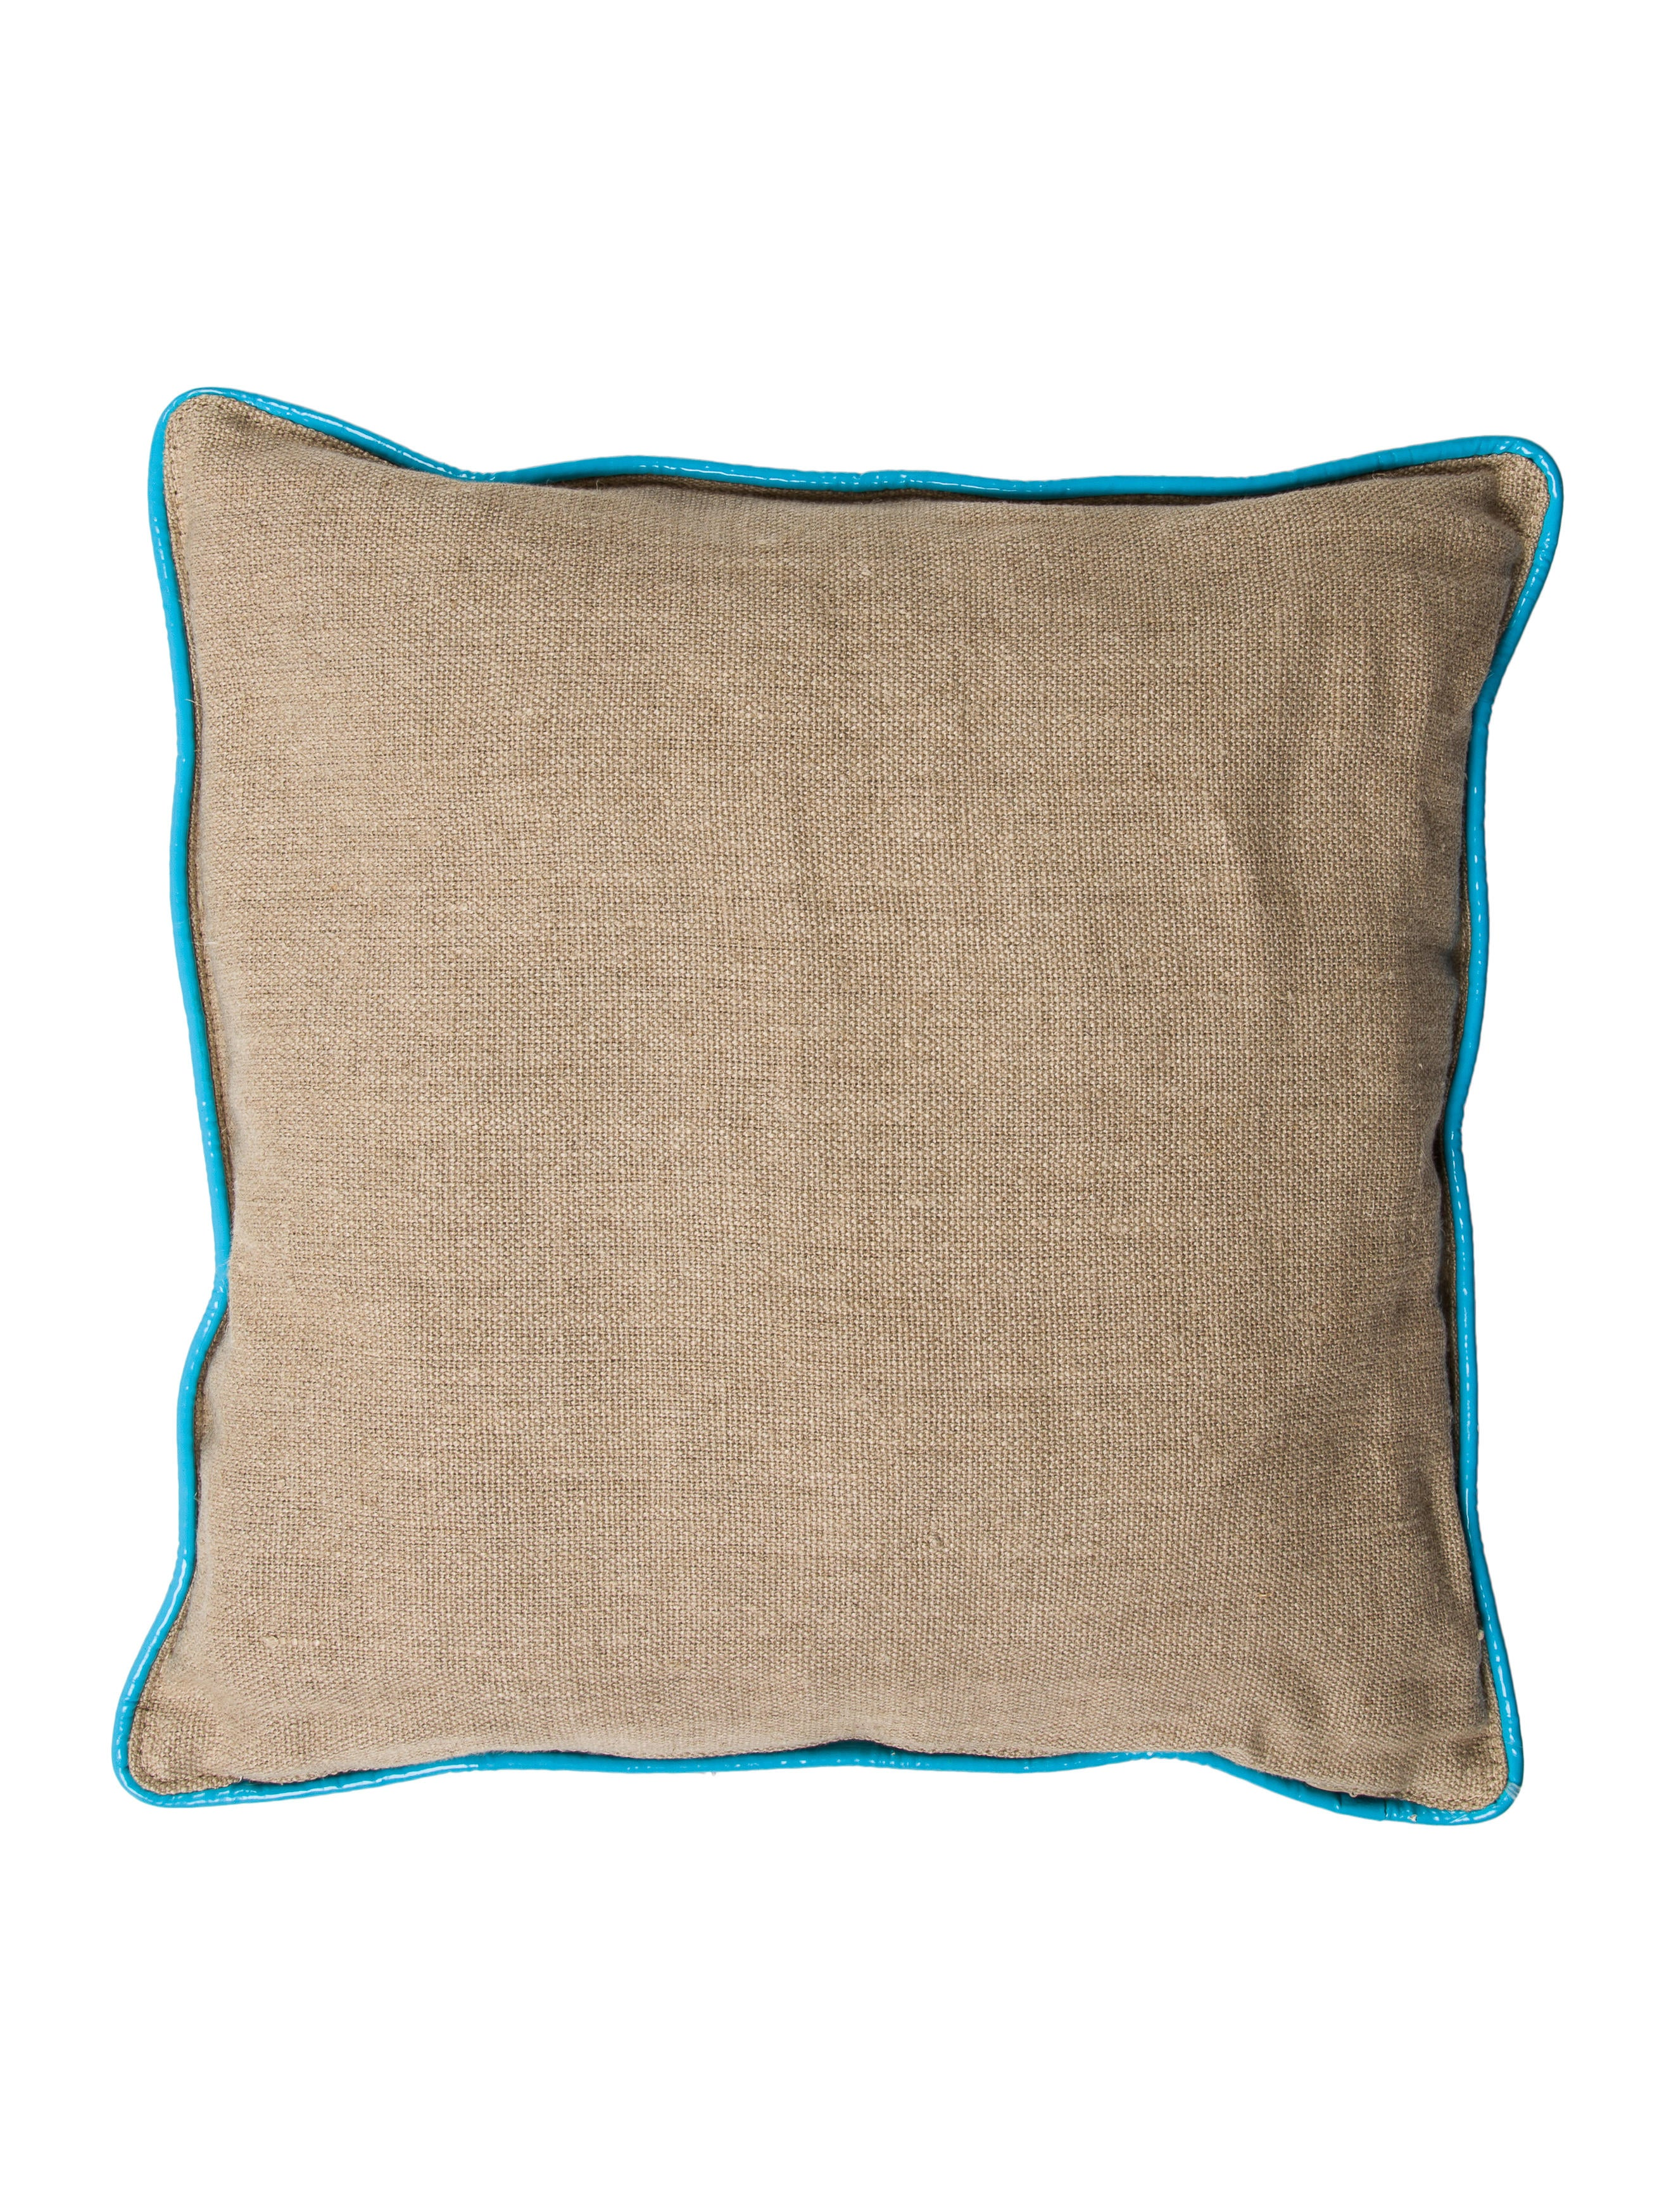 Throw Pillows Justice : Jonathan Adler Leather-Paneled Throw Pillow - Bedding And Bath - JTADL20652 The RealReal